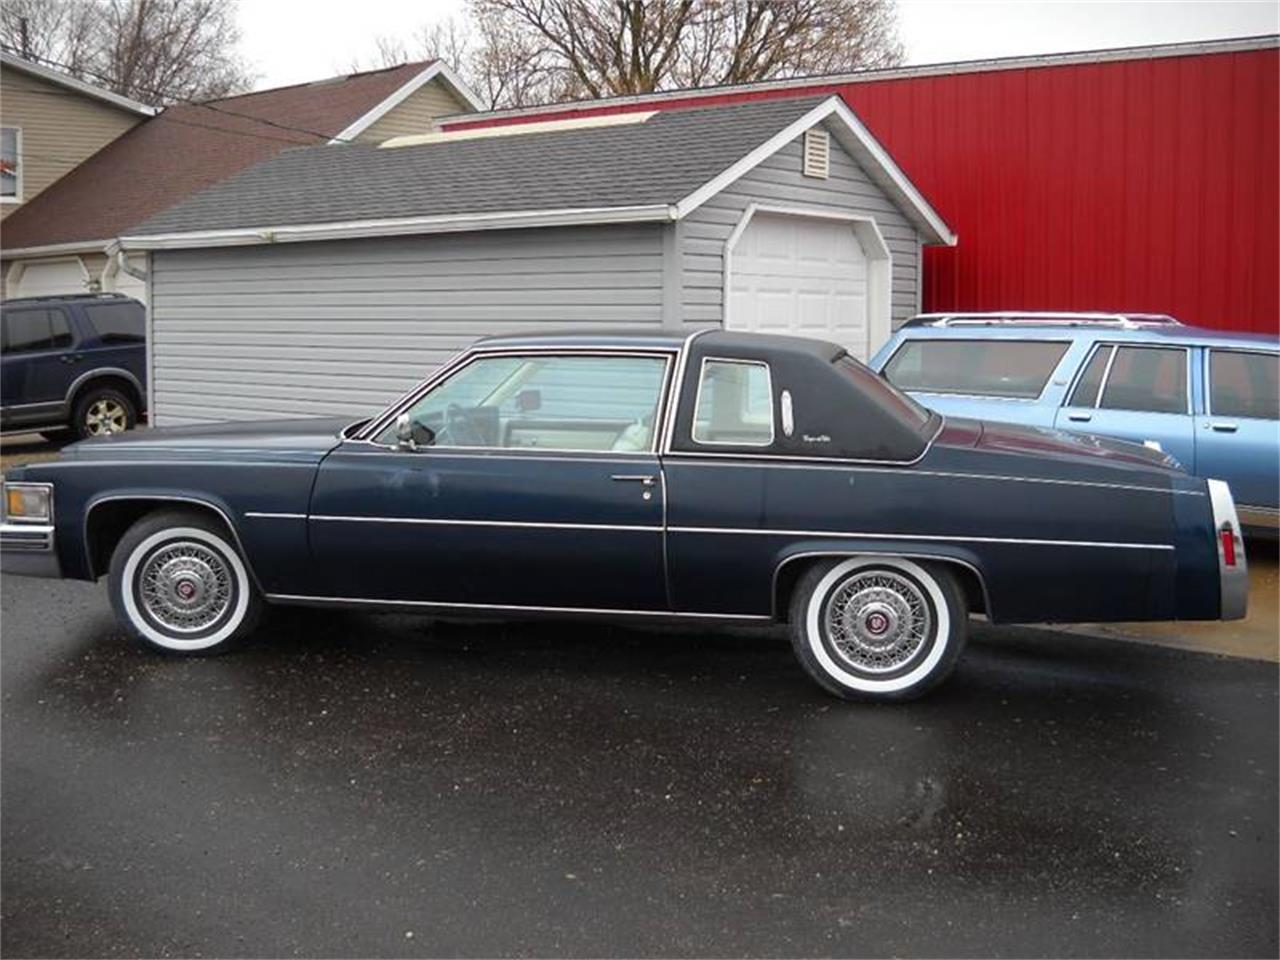 Large Picture of '78 Cadillac DeVille located in Ohio - $8,550.00 - N54I